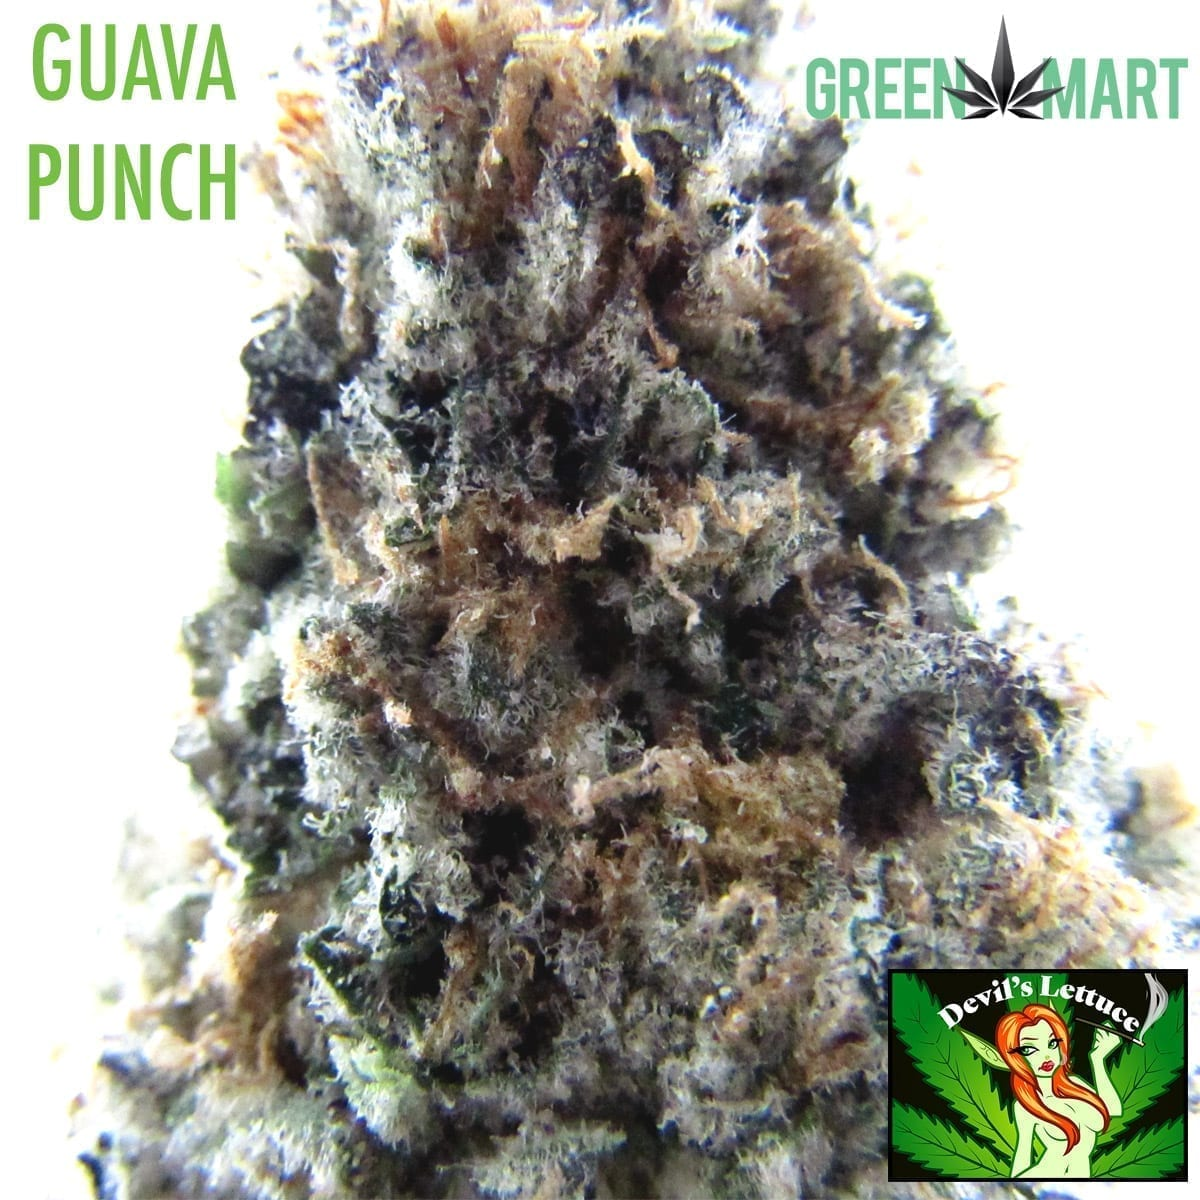 Guava Punch by Devil's Lettuce